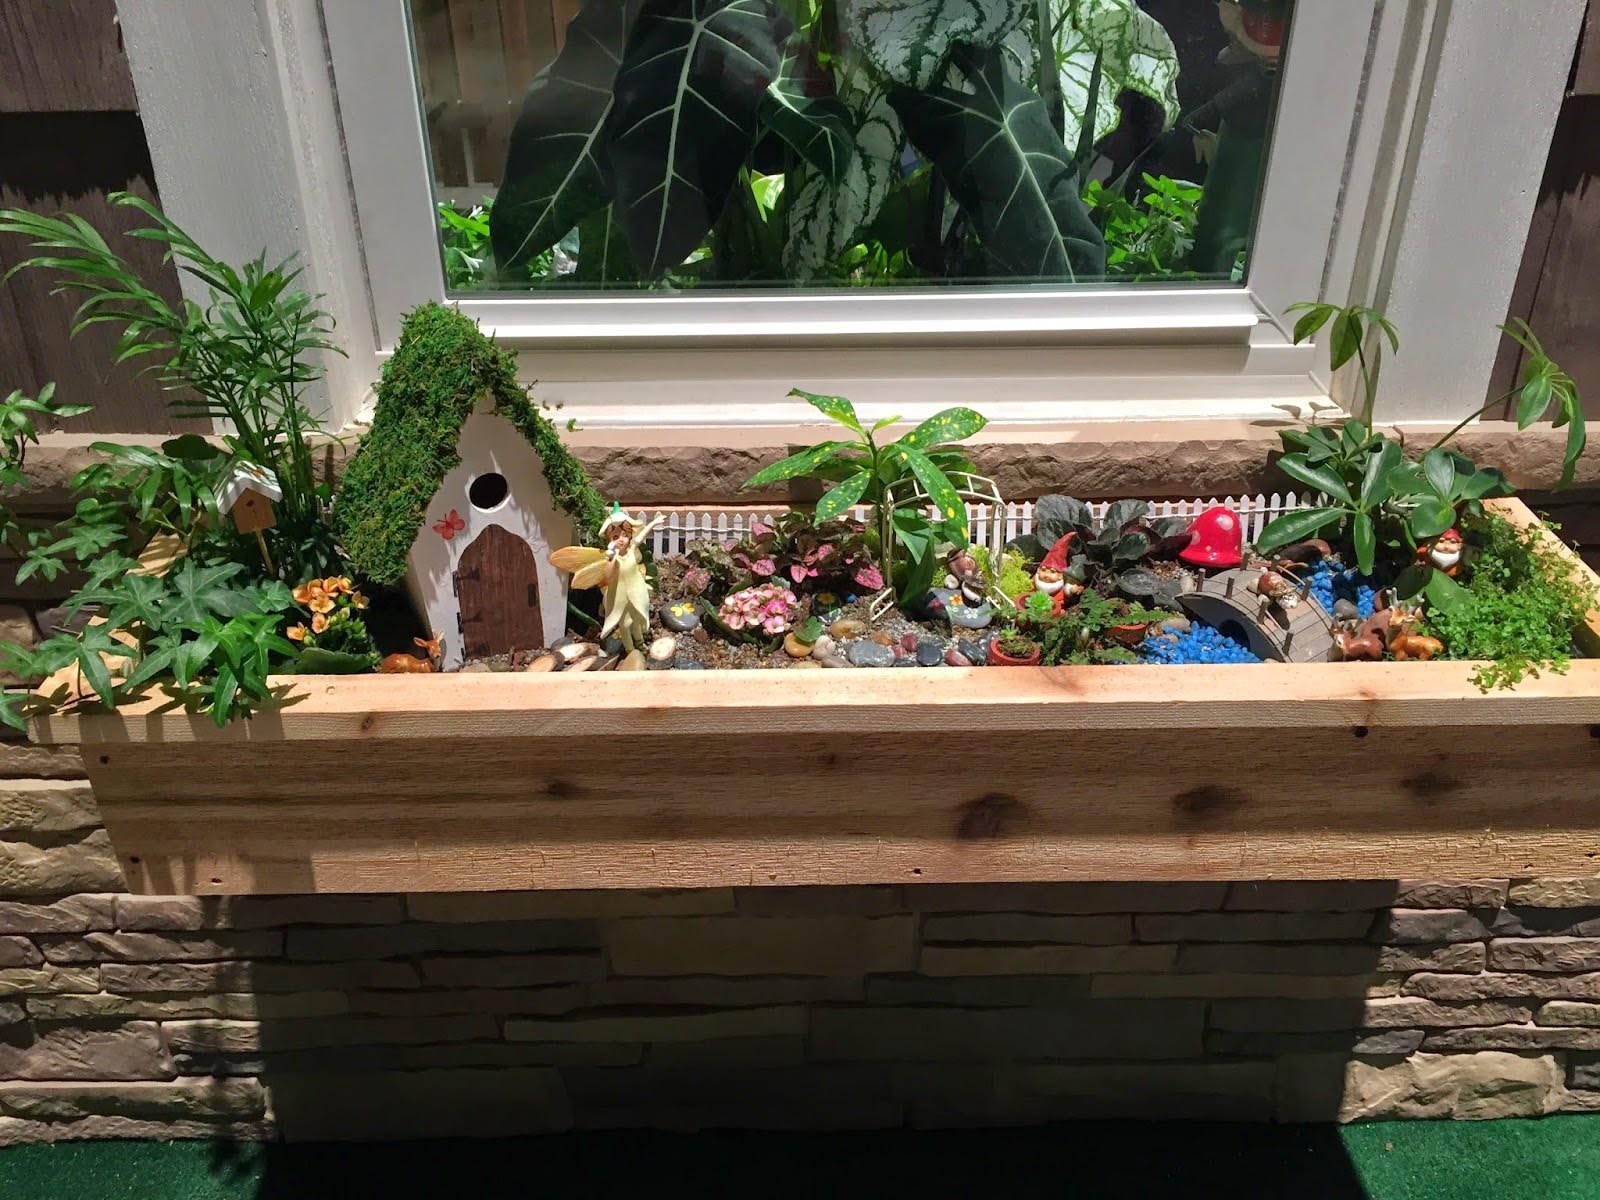 Fairy garden planter box garden design ideas for Garden planter ideas